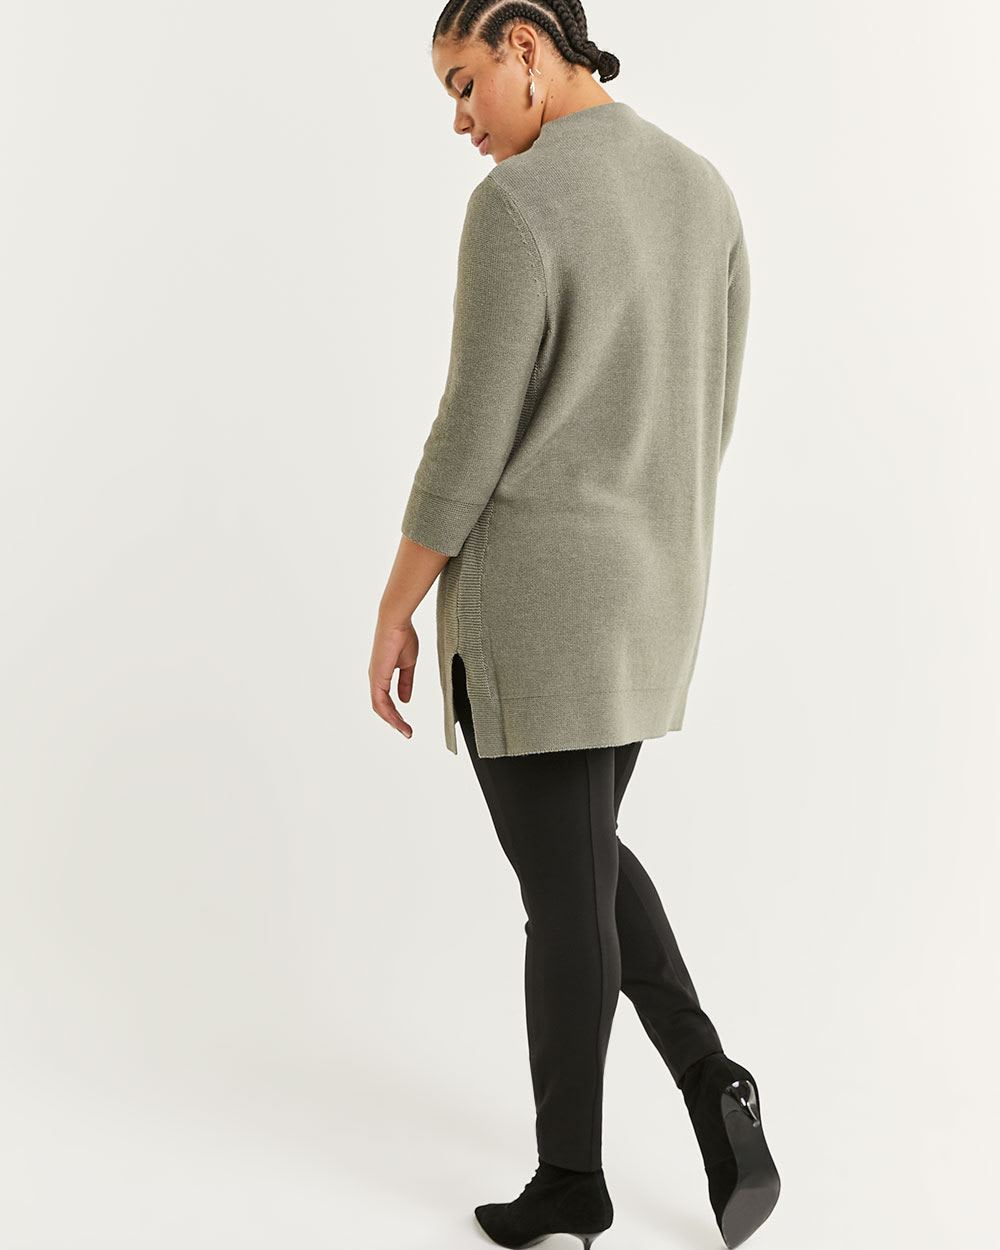 3/4 Sleeve Mock Neck Tunic with Side Slits